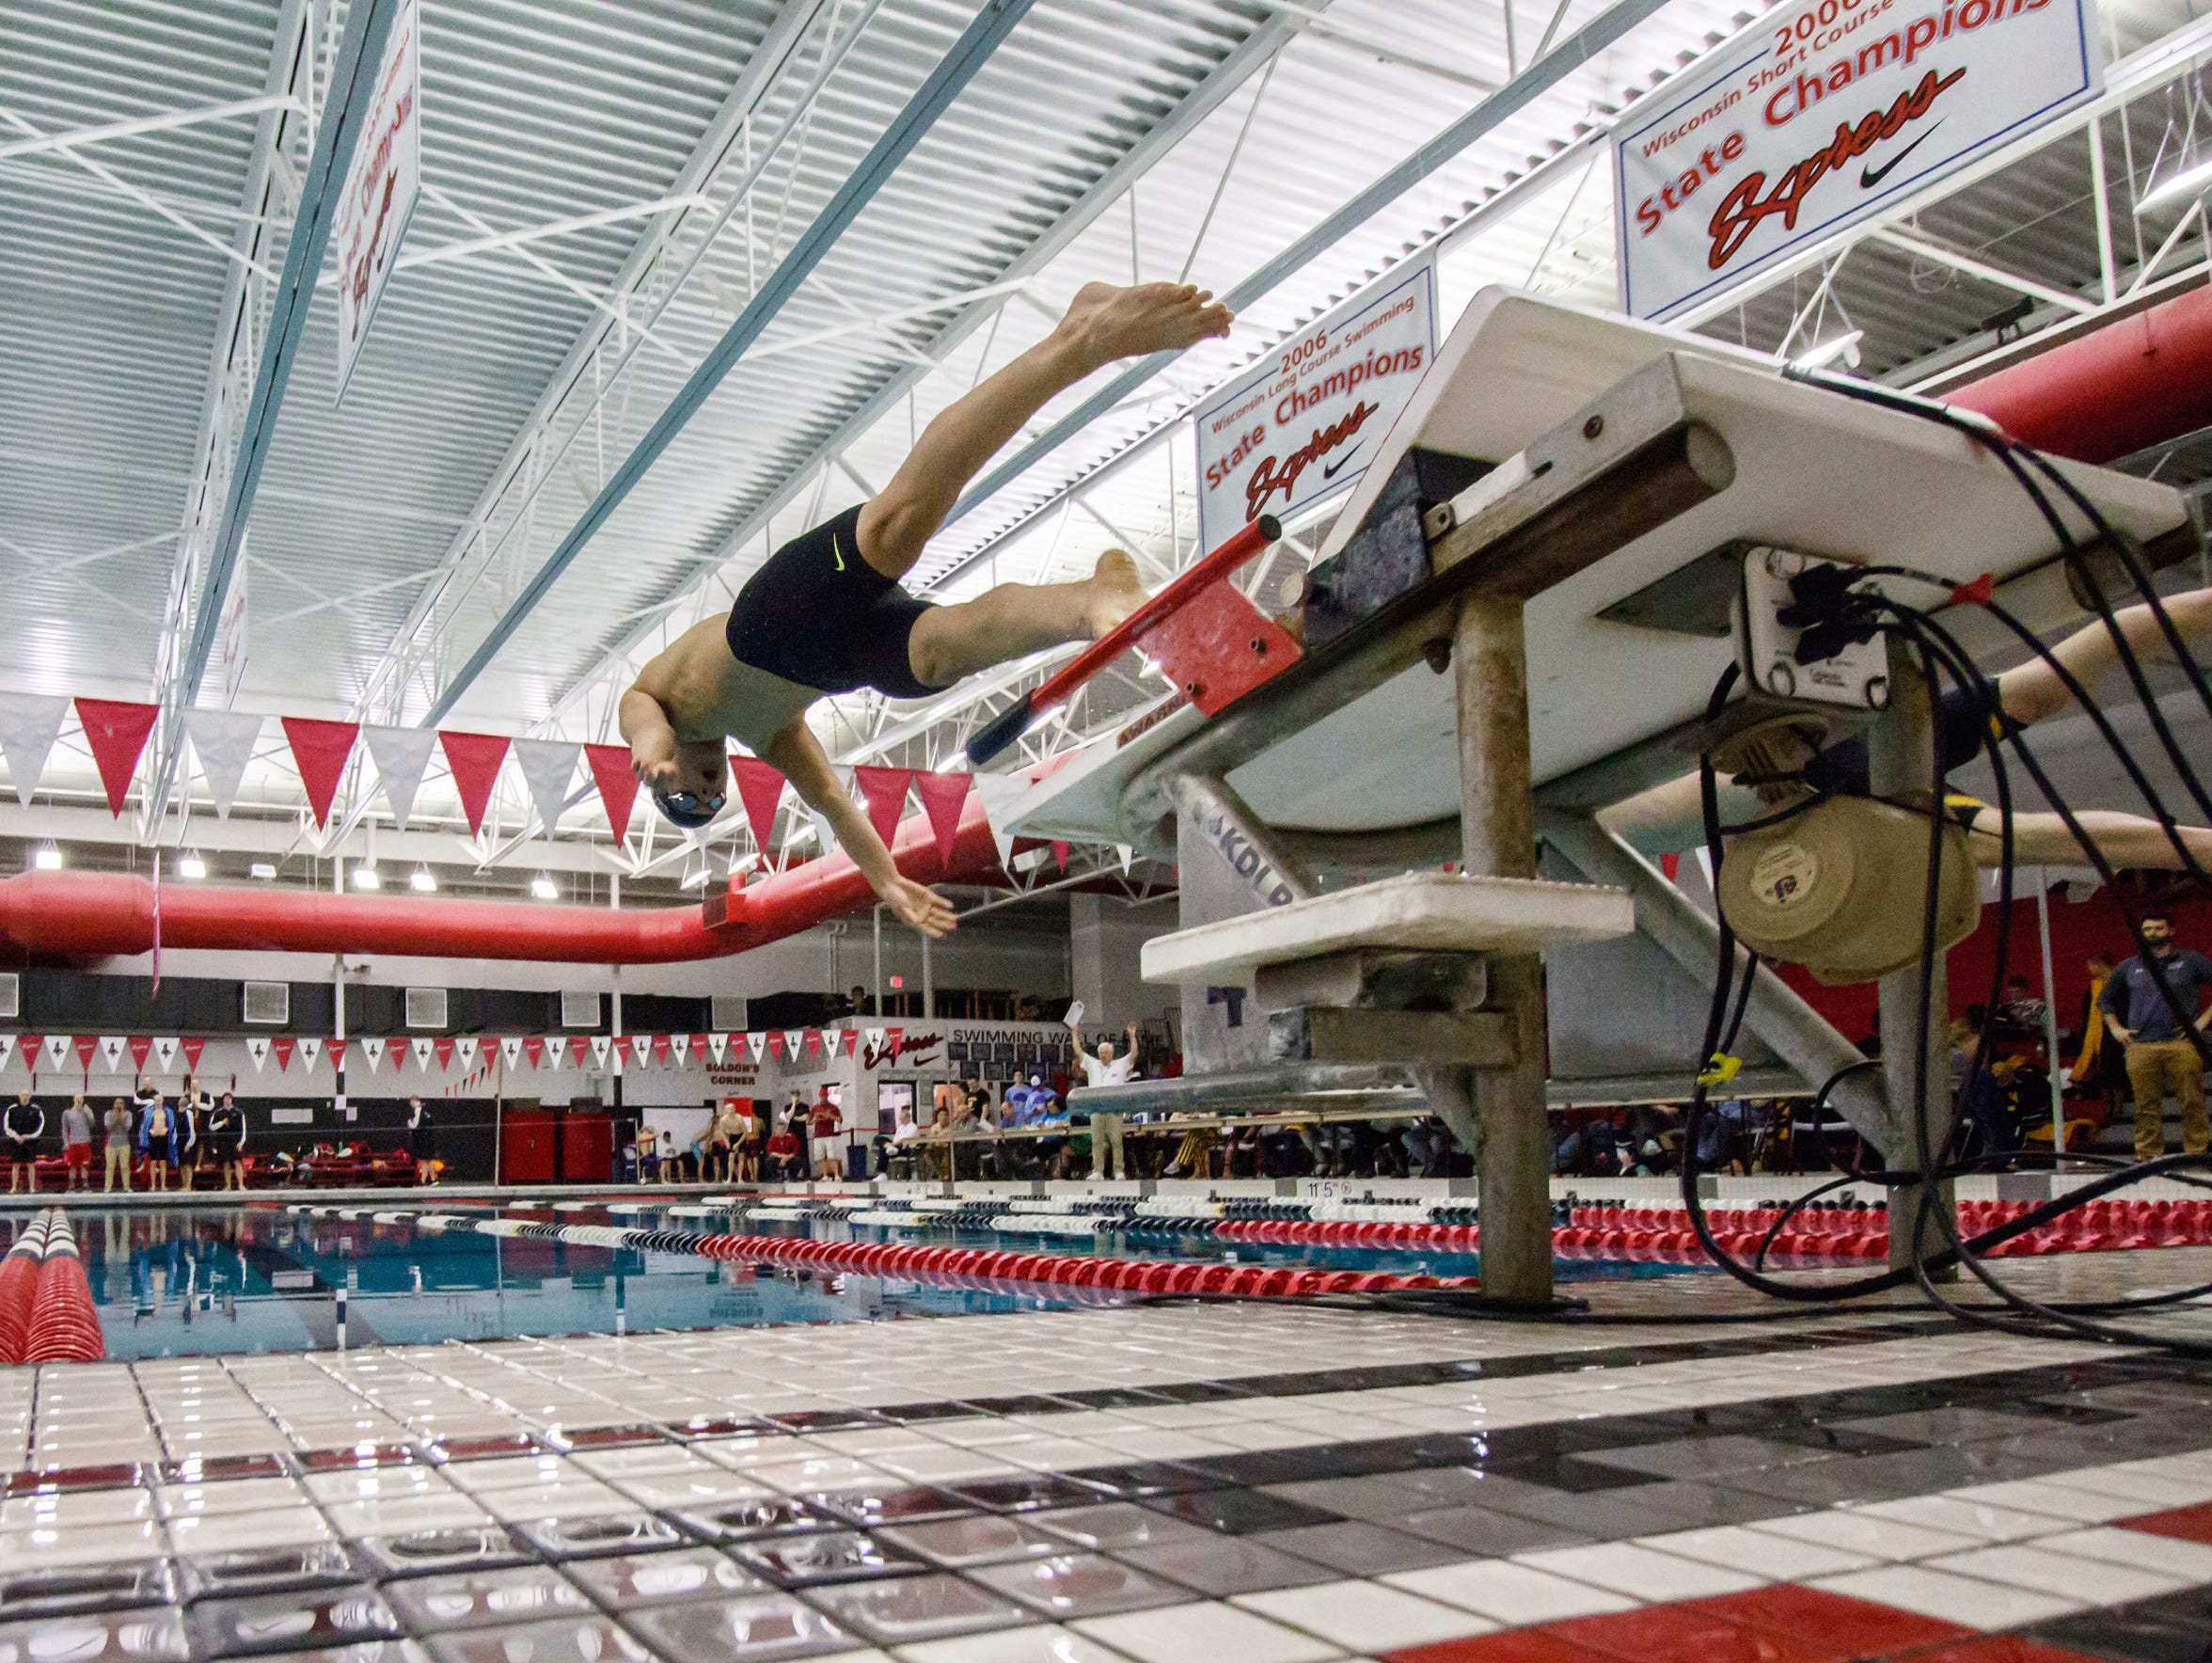 Competitors launch off the blocks during the 2018 WIAA